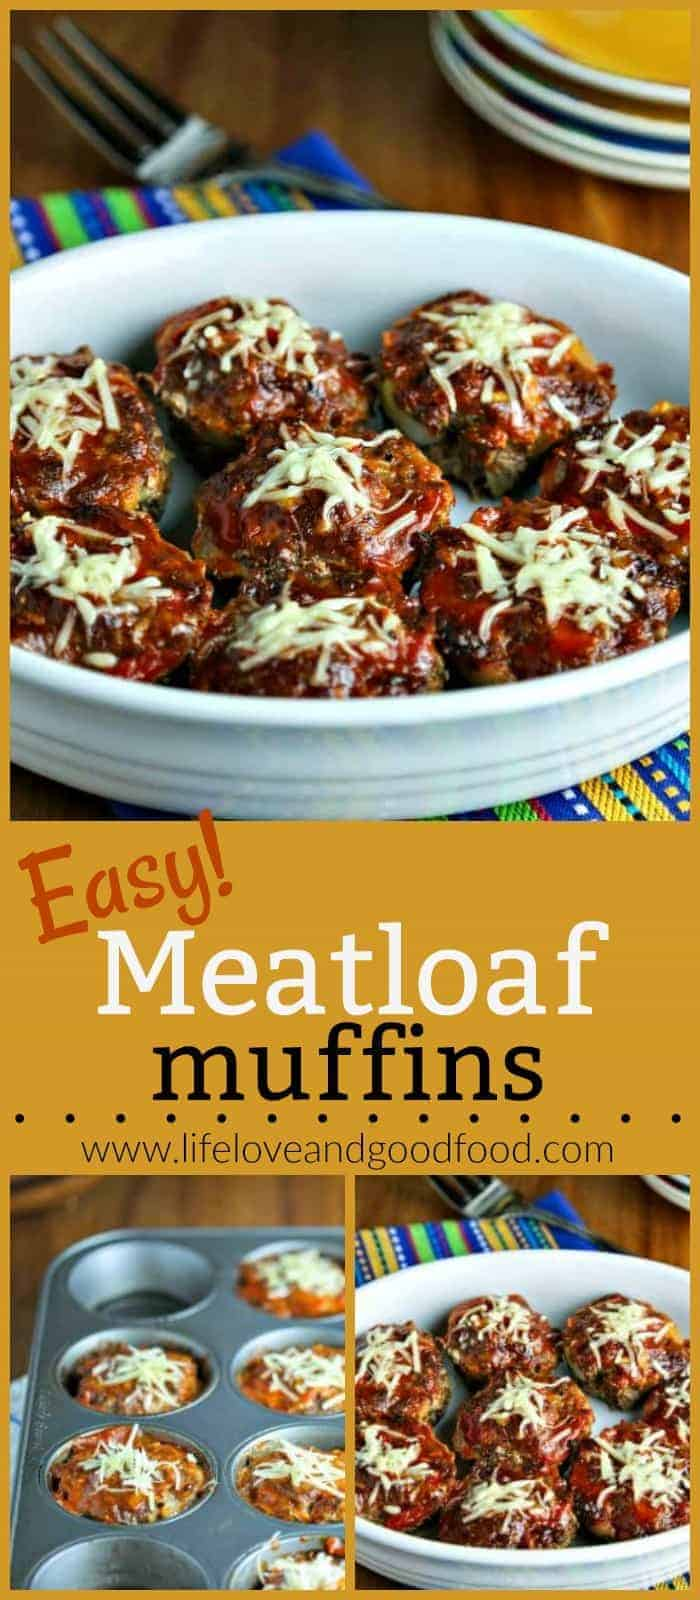 Down-home comfort food gets a healthy makeover in these lean Easy Meatloaf Muffins AND they can be prepared and on your table in less than an hour!